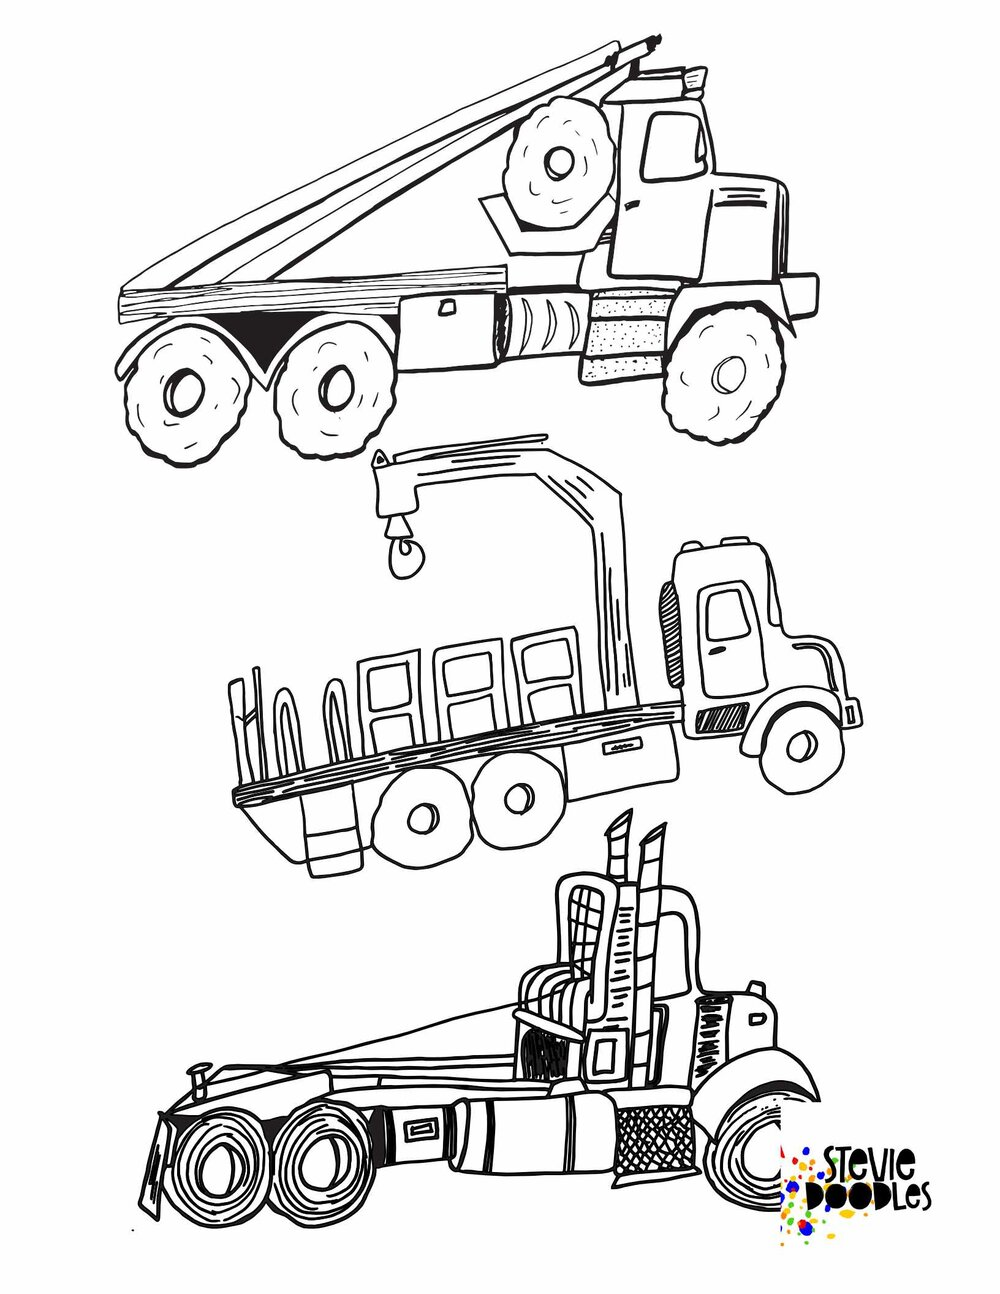 Trucks 1000 Free Printable Coloring Pages Stevie Doodles Free Printable Coloring Pages